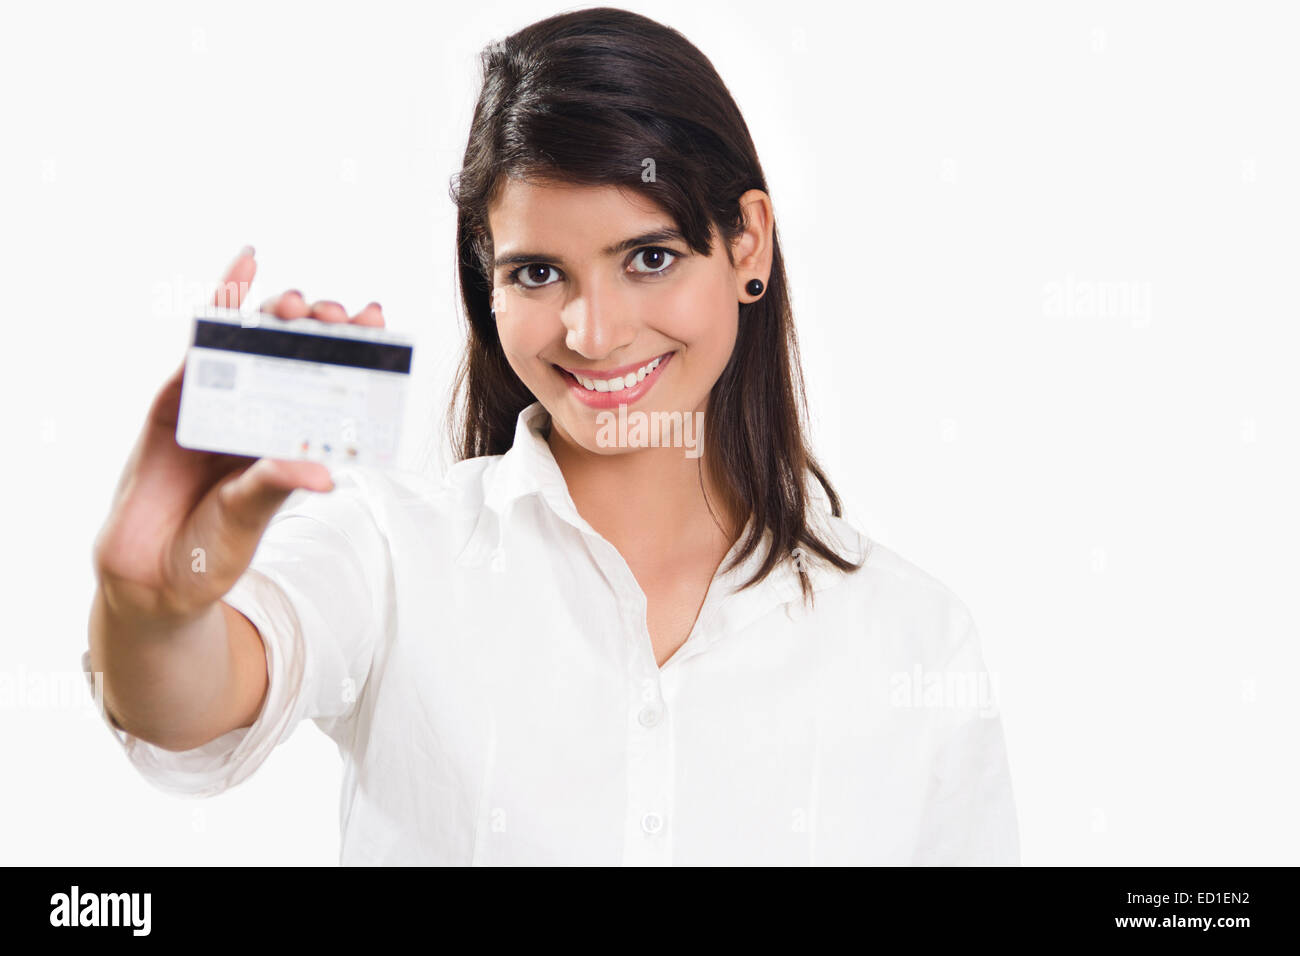 Indian lady showing credit card stock photos indian lady showing 1 indian business woman showing credit card stock image reheart Images